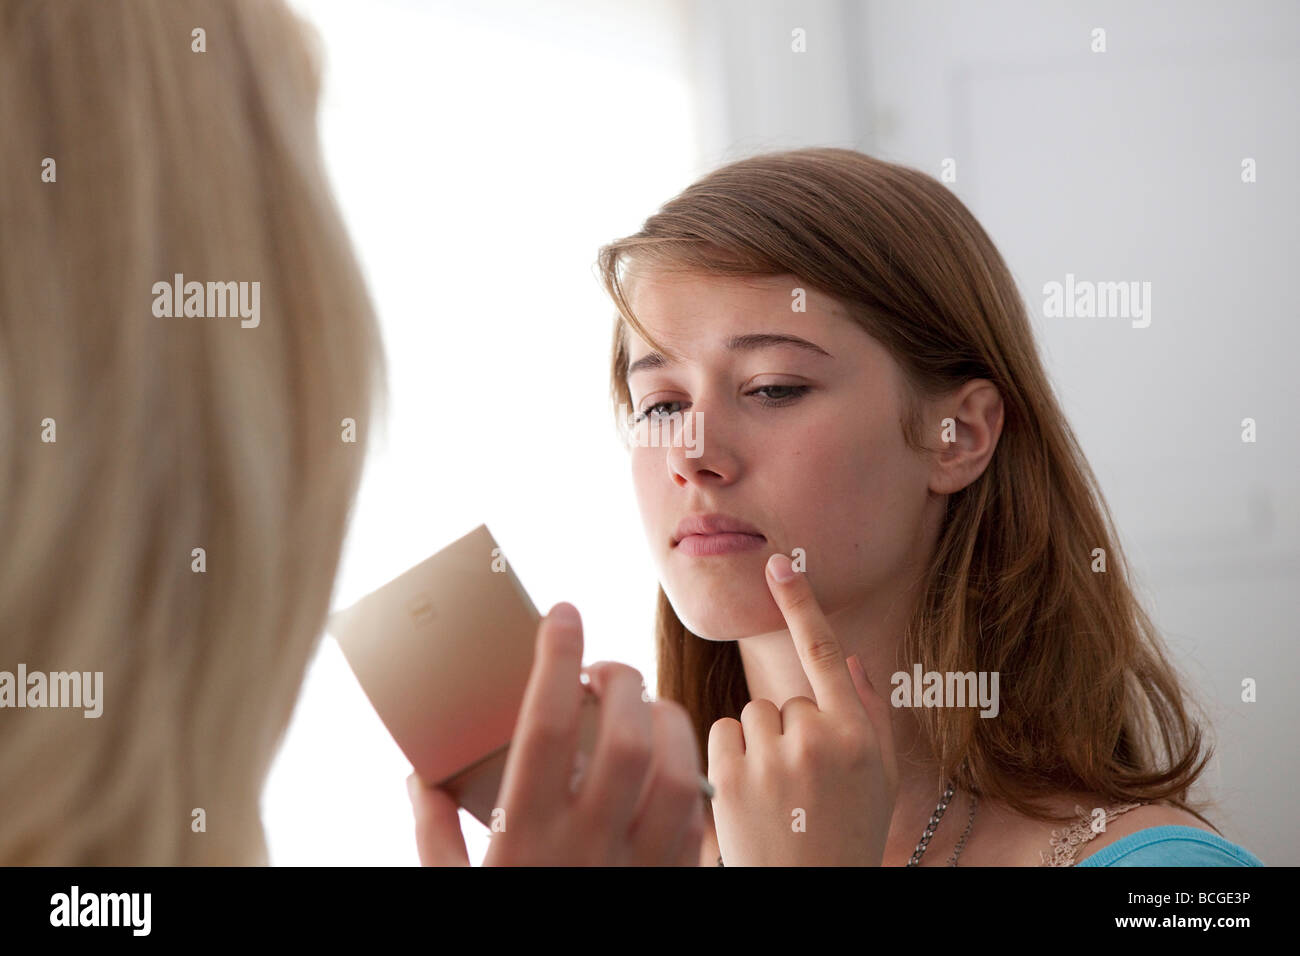 Teenage girl looking in the mirror for pimples - Stock Image